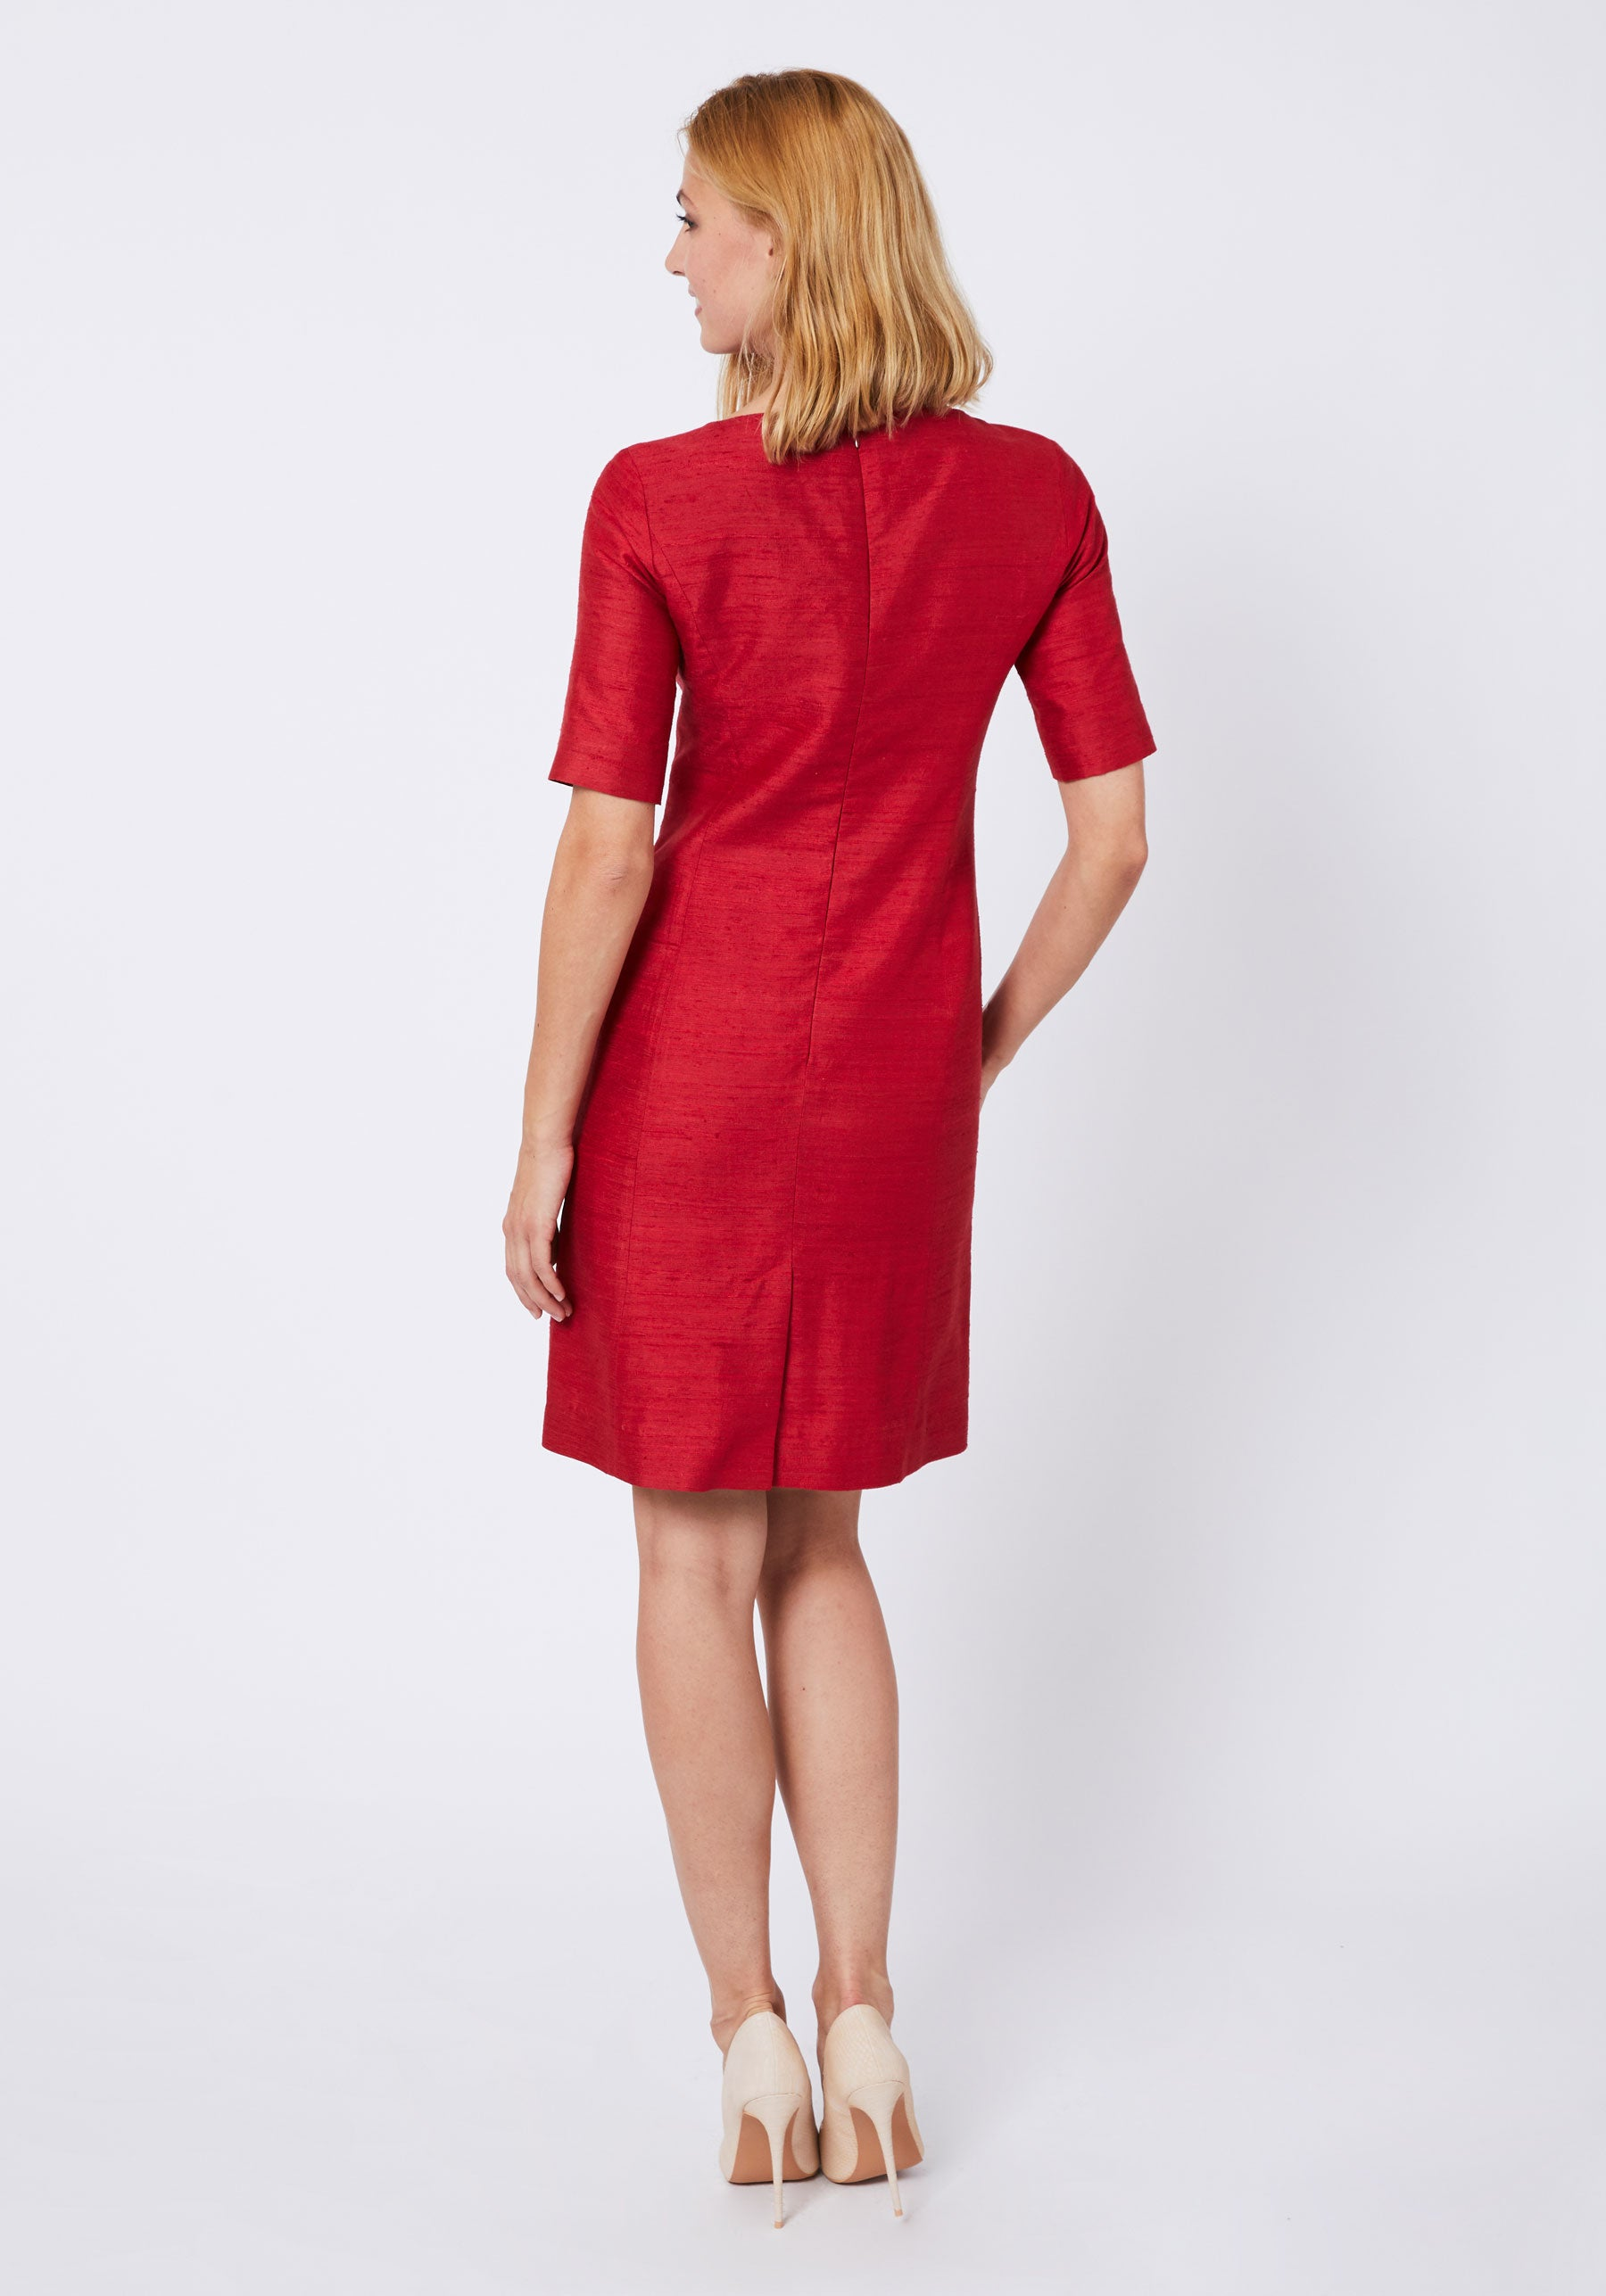 Ascot Dress in Strawberry Vienne Silk